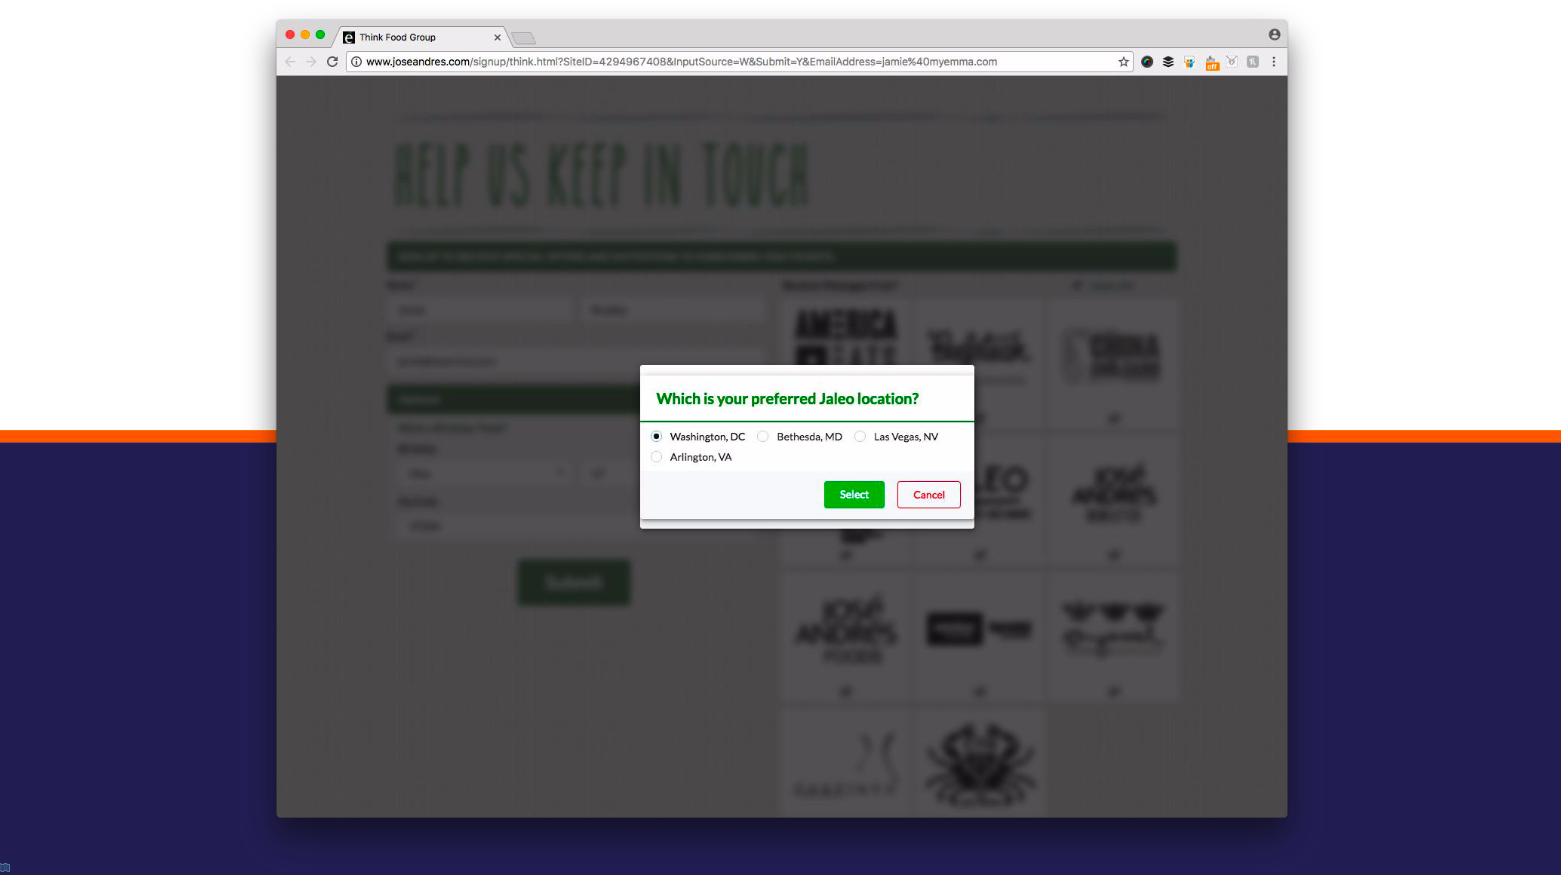 An example of using a signup form to collect subscriber location